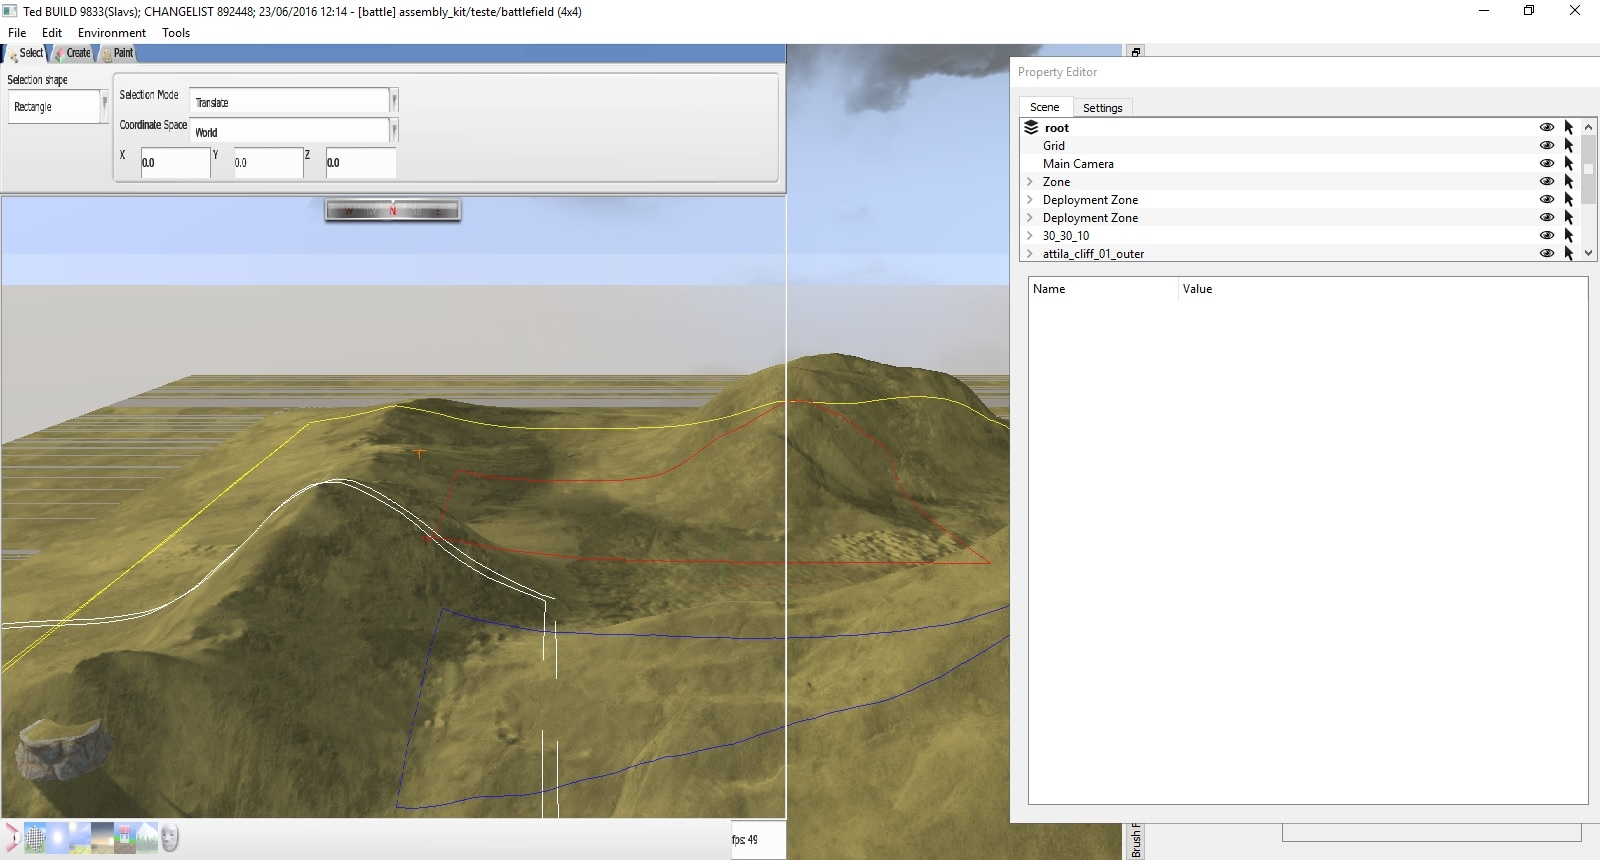 How to play a custom map made by me in attila total war game after creating the custom map i copied the ck file created in ted to the assemblykit retail data folder gumiabroncs Images